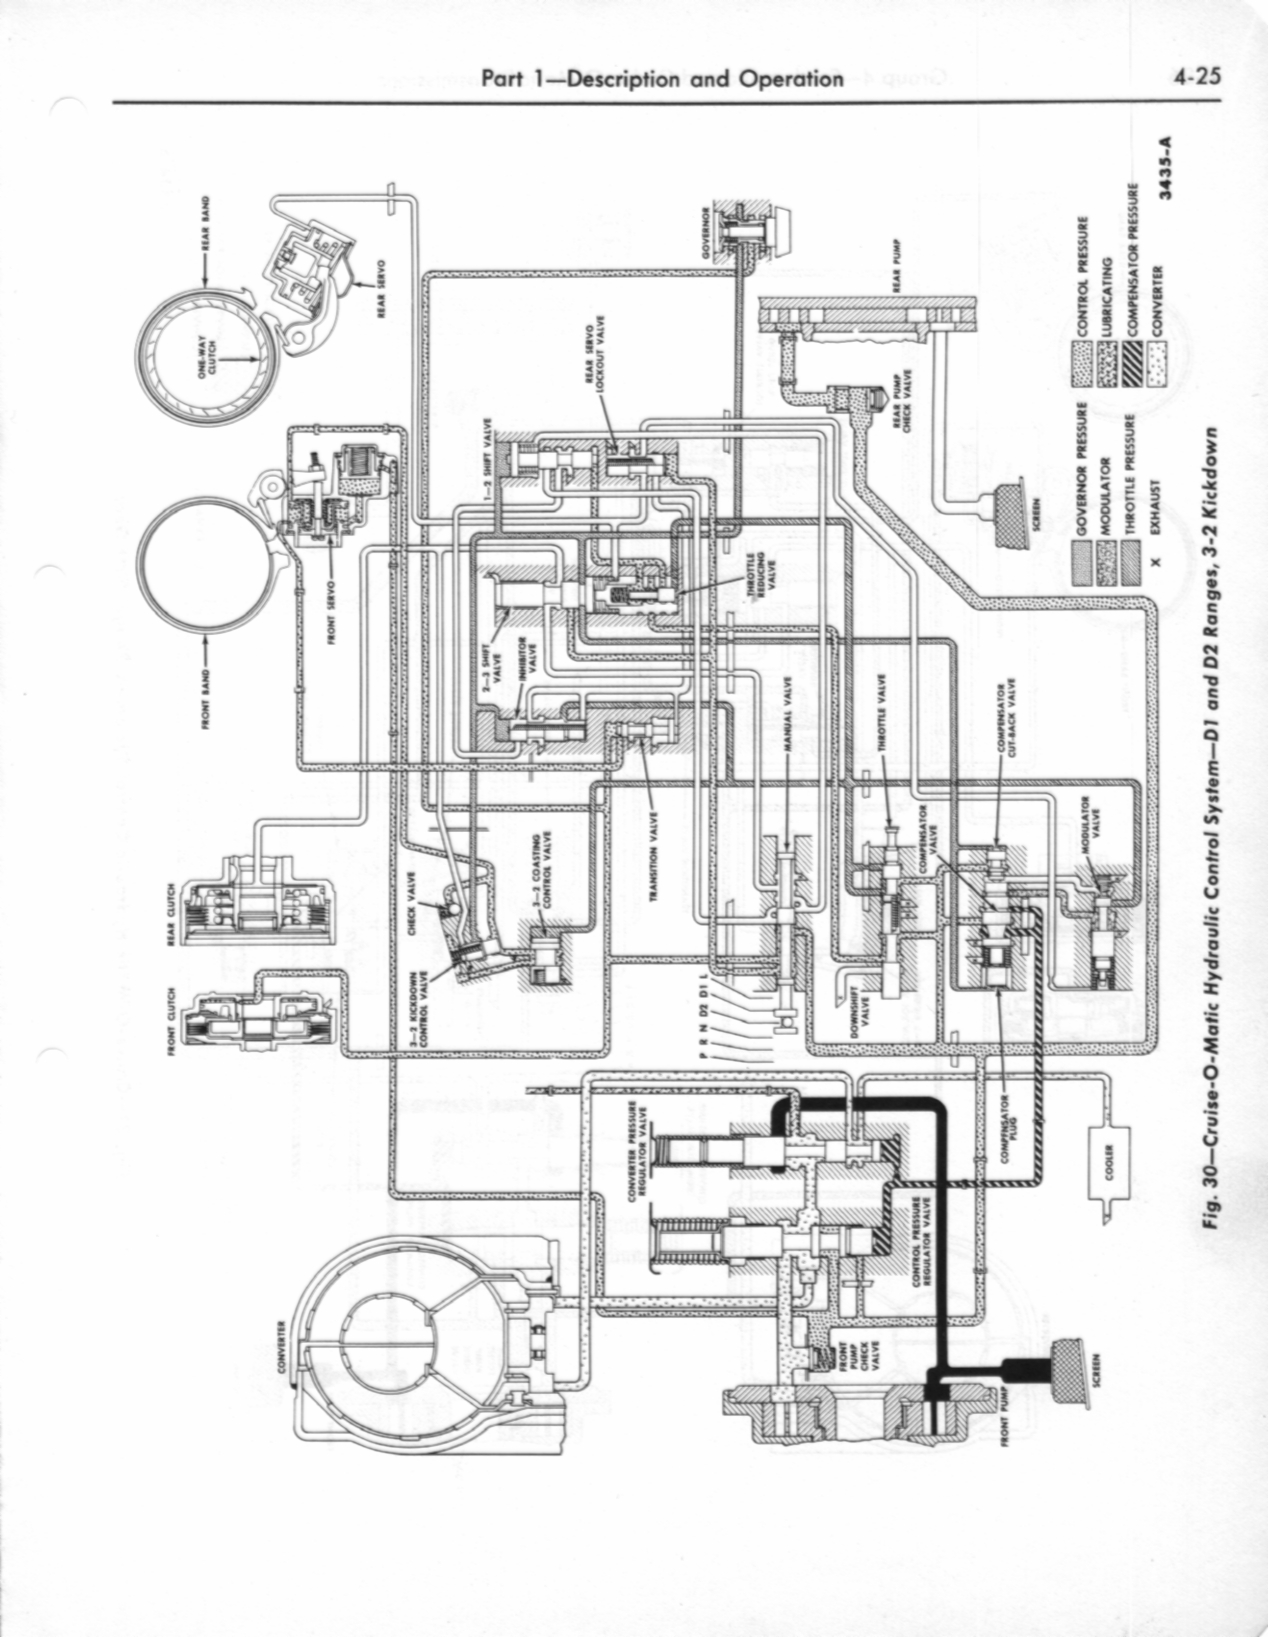 Ford-O-Matic and Cruise-O-Matic Transmissions